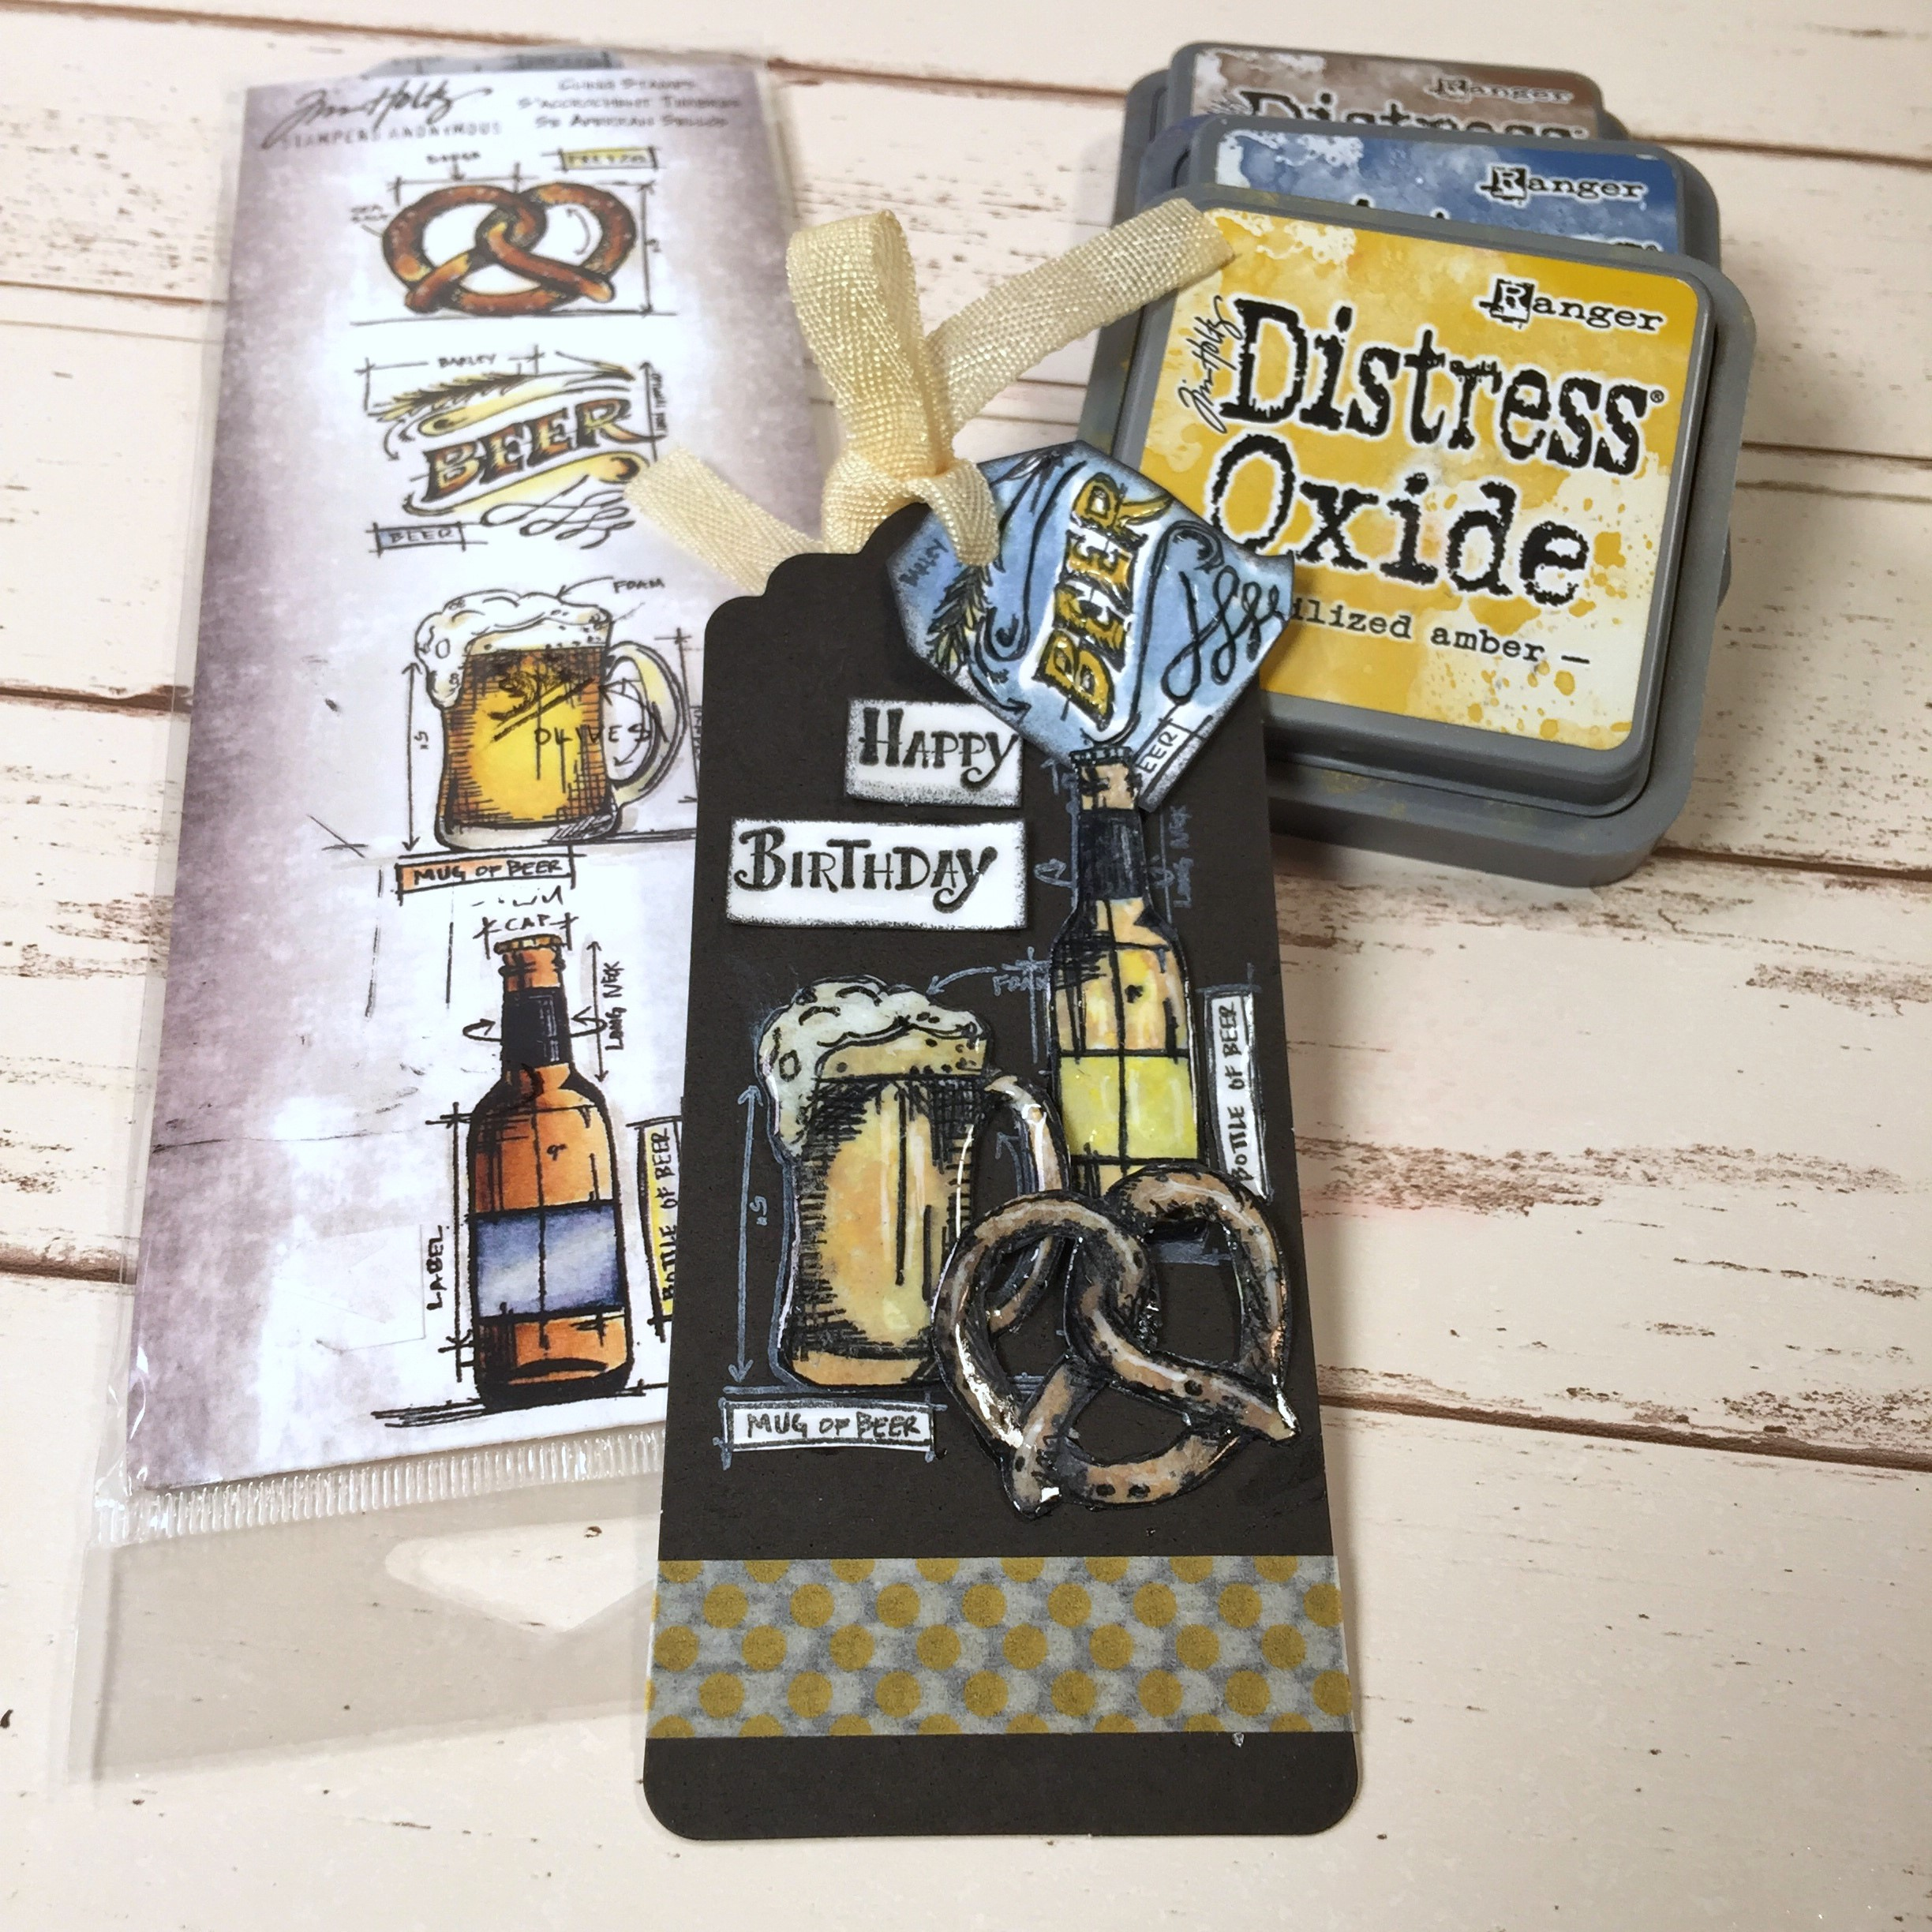 Beer Birthday Tag featuring Stampers Anonymous designed by Kerry Engel